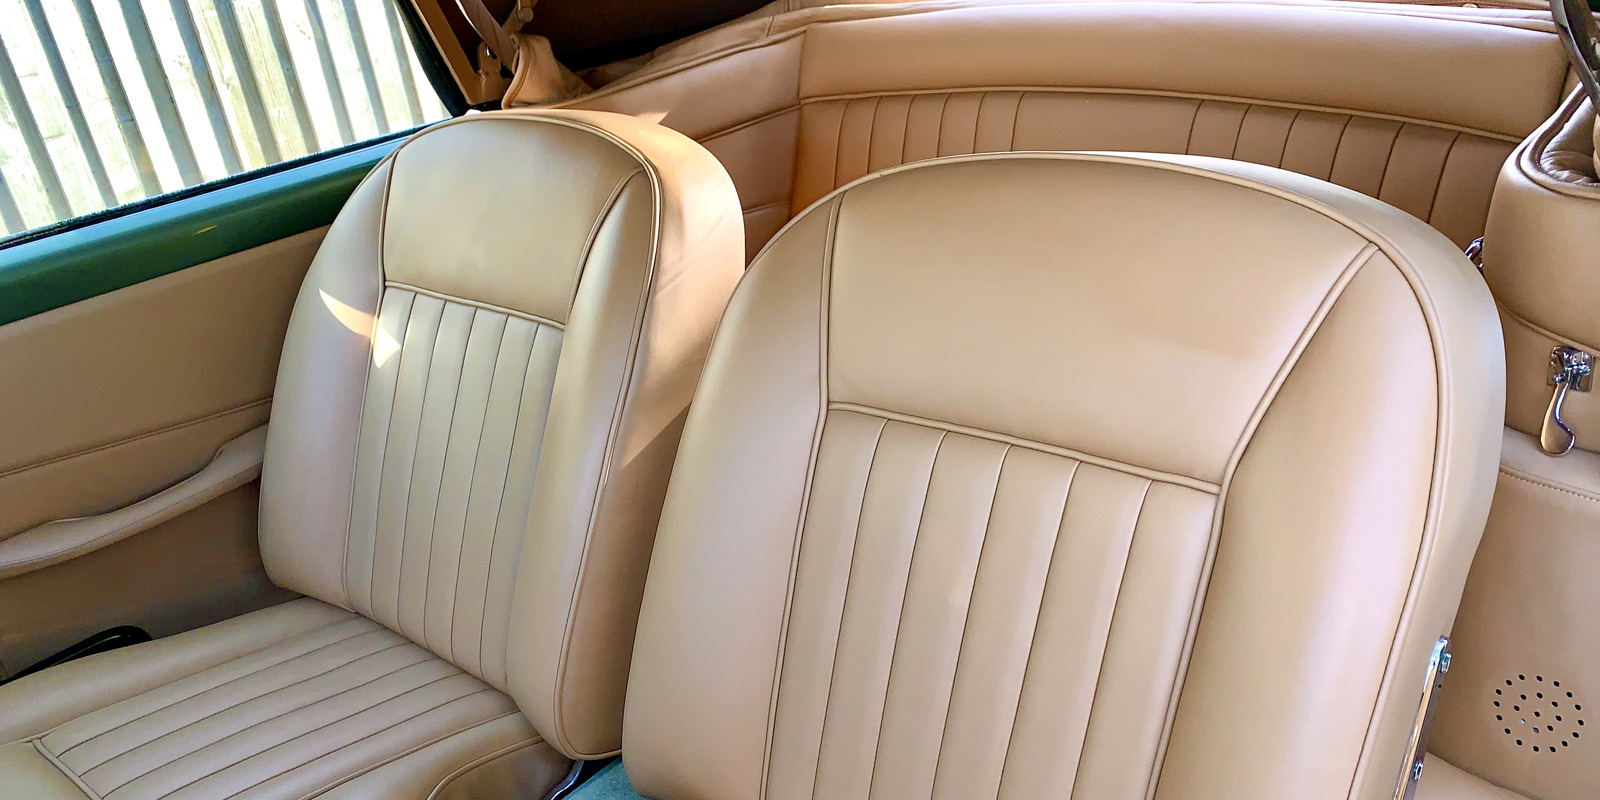 Upholstery service for cars